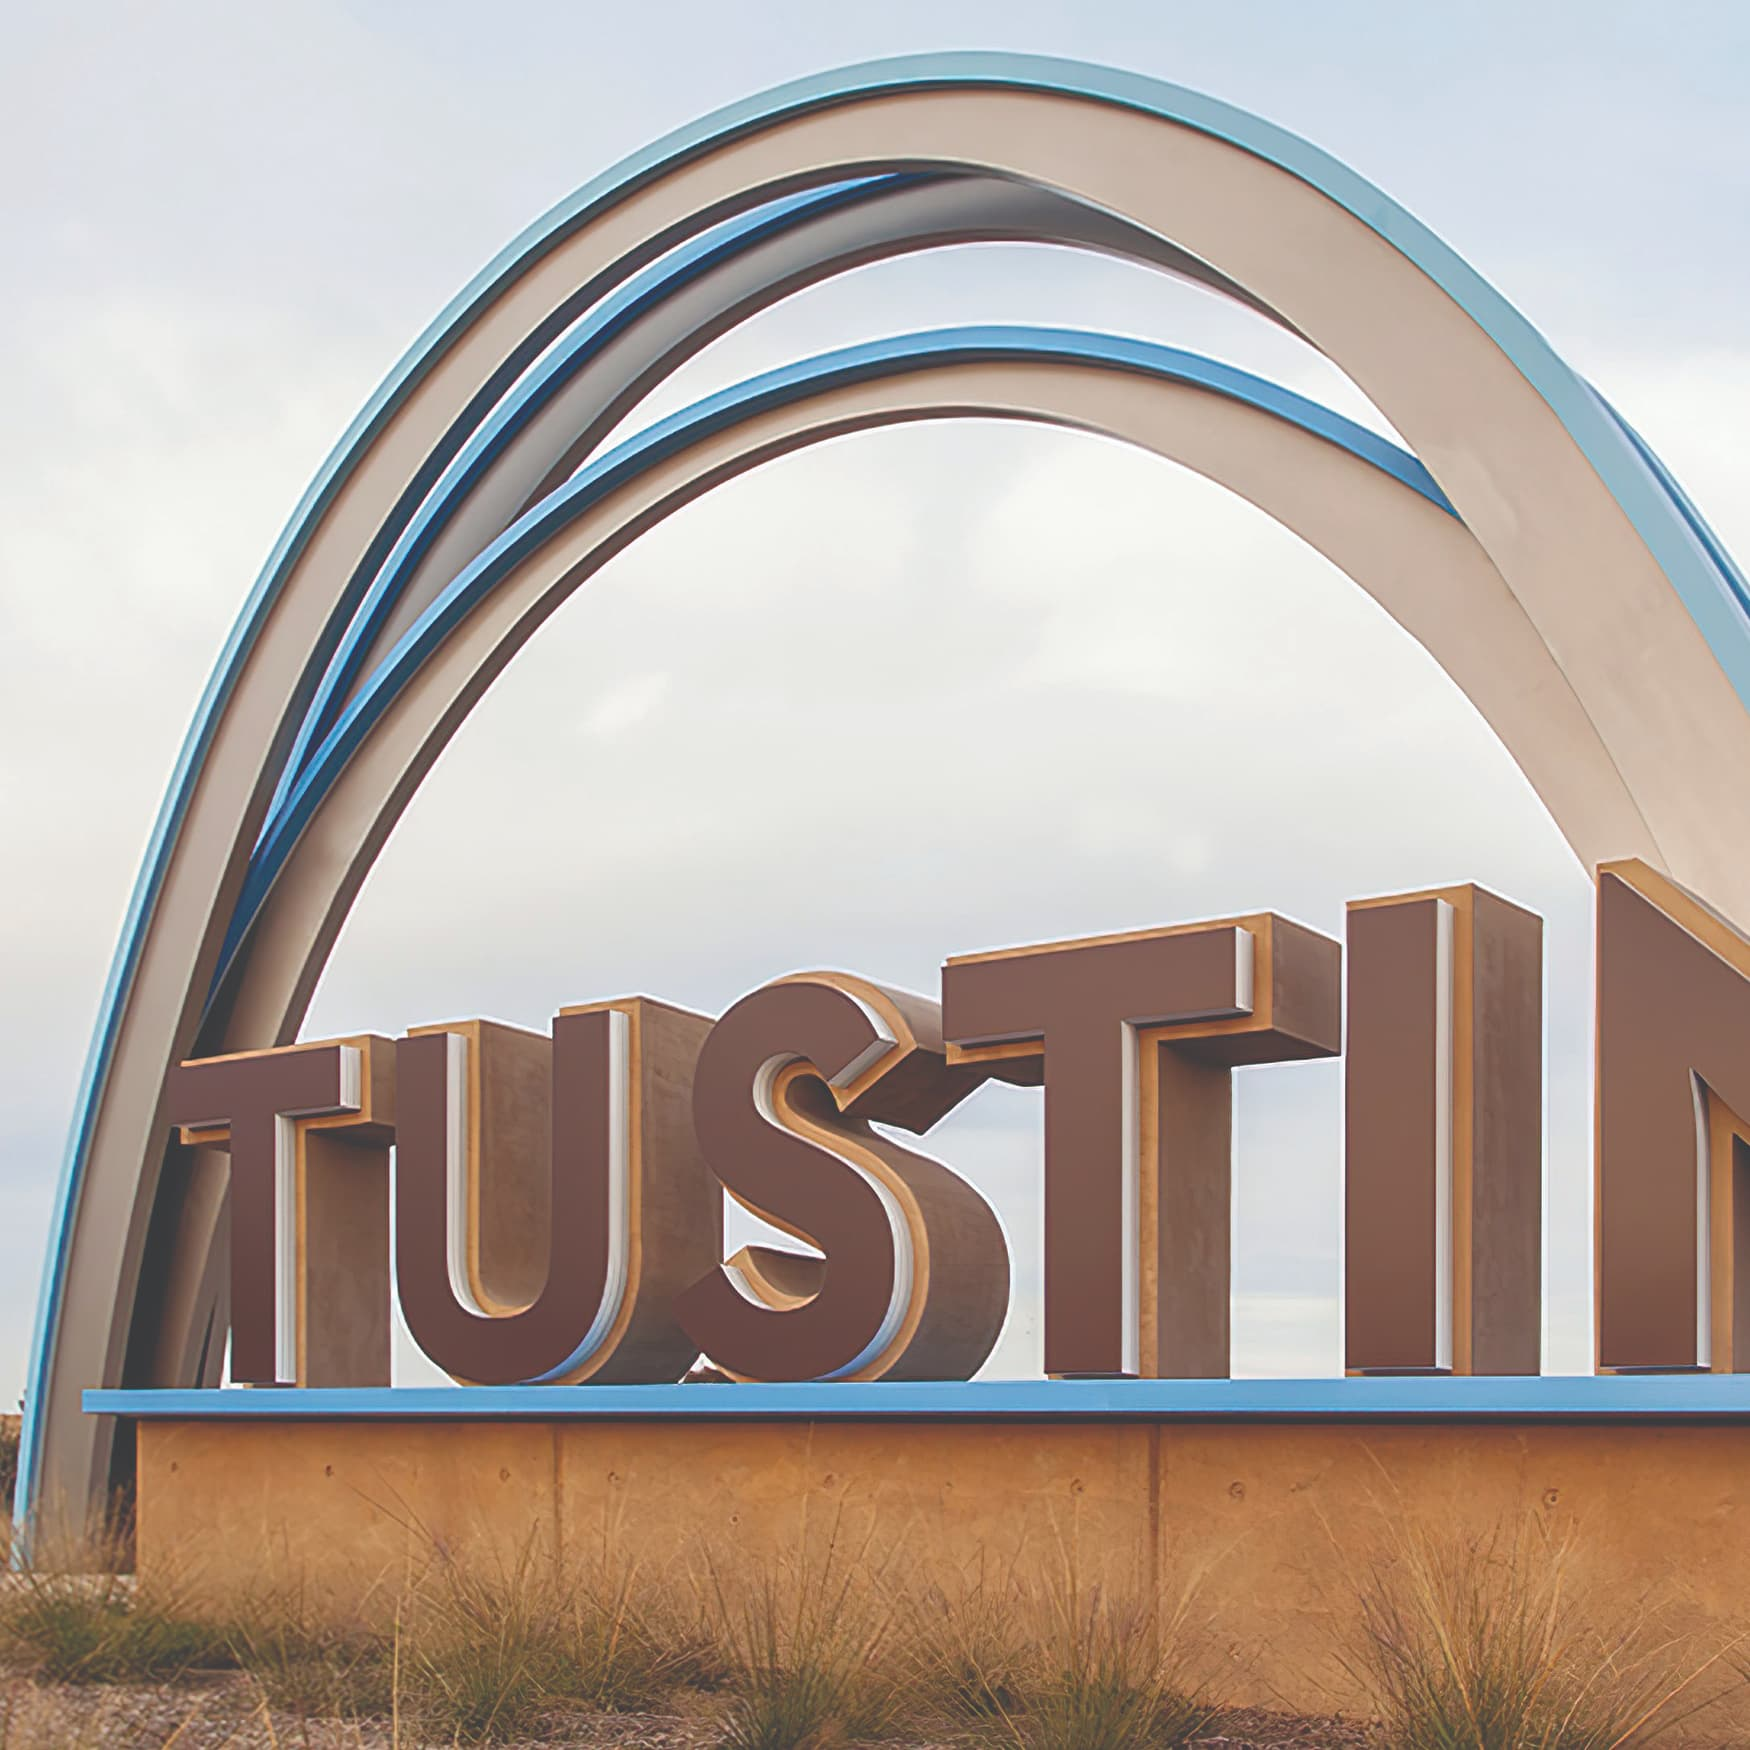 A photograph of a monument sign at Tustin Legacy featuring an arch and large fabricated letters.